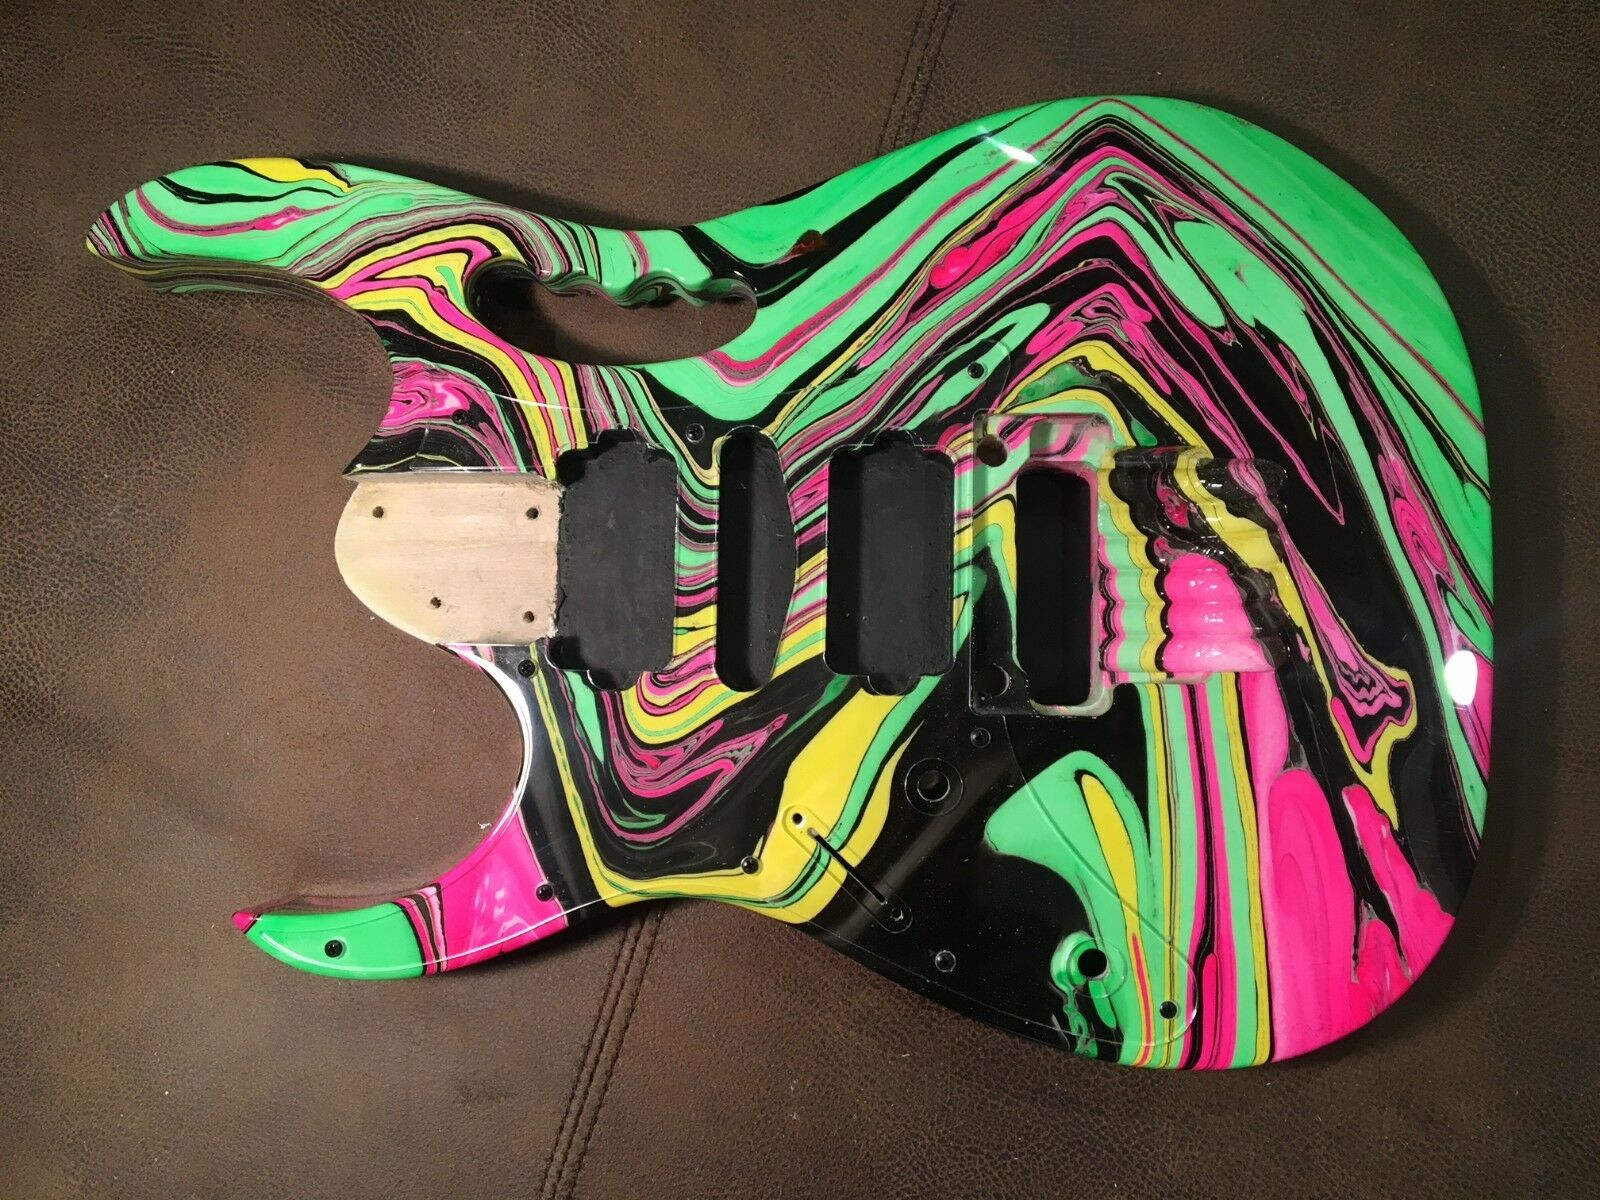 6 string, LEFTY, Passion and warfare swirl, Jem style guitar body, AANJ - RB13